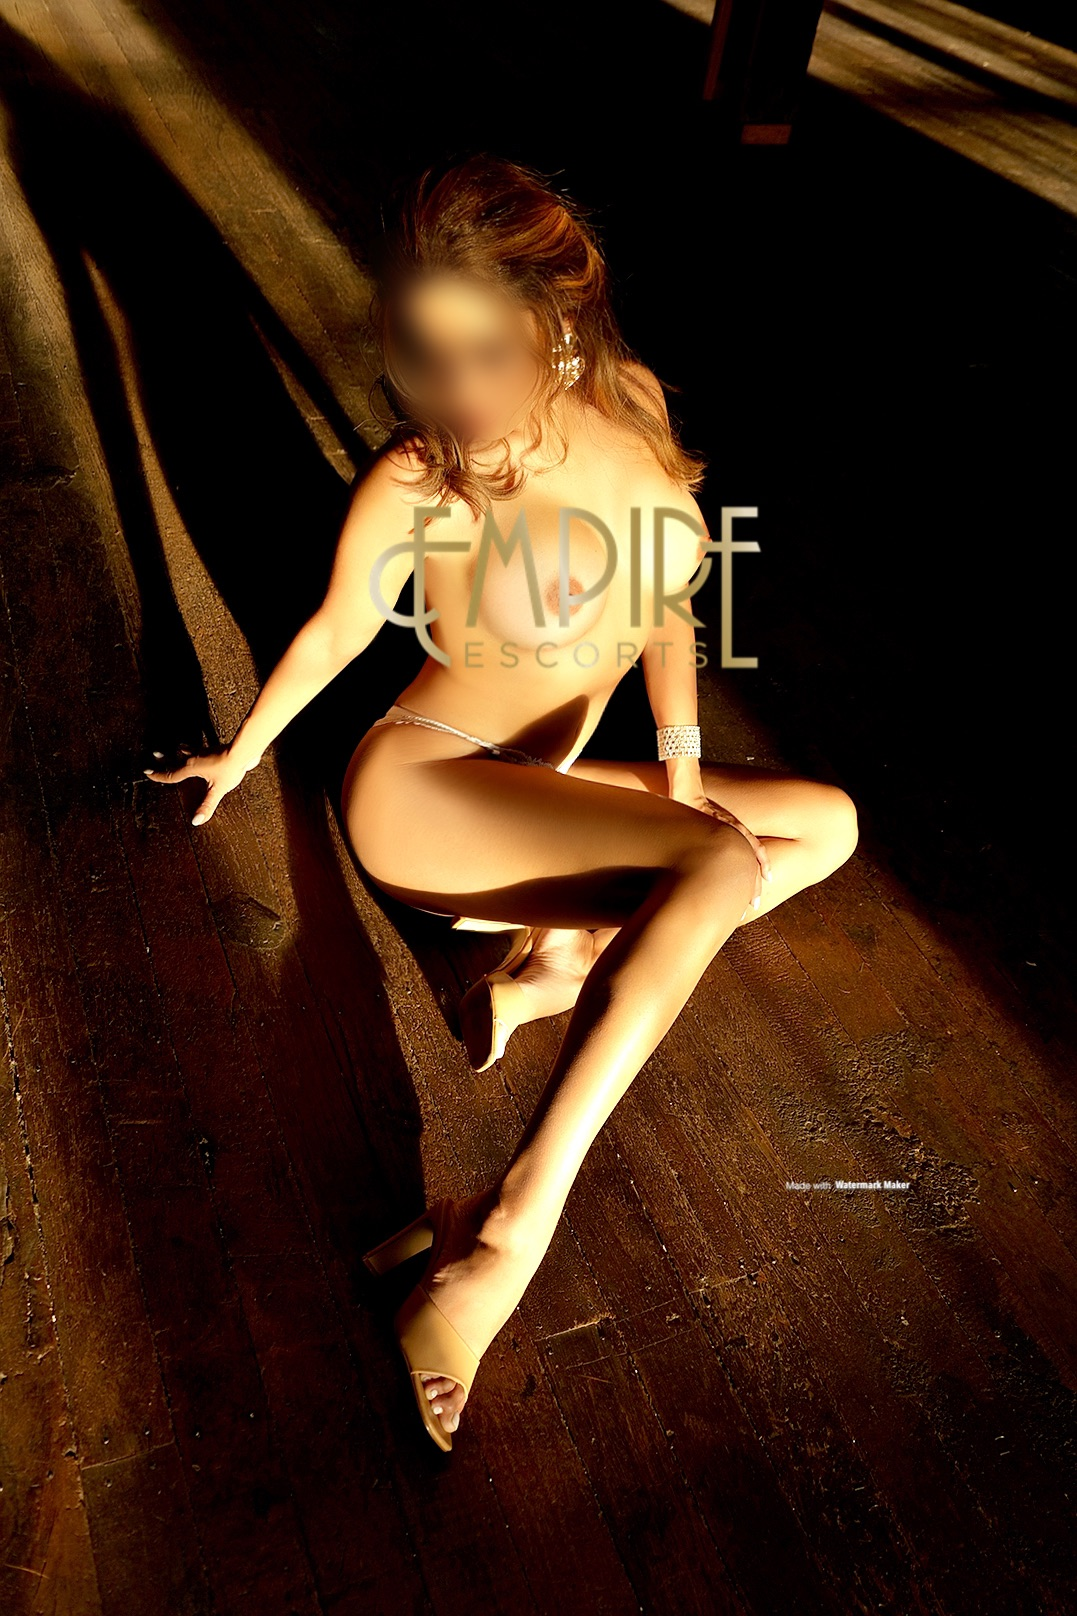 Holly at Empire Escorts Sydney